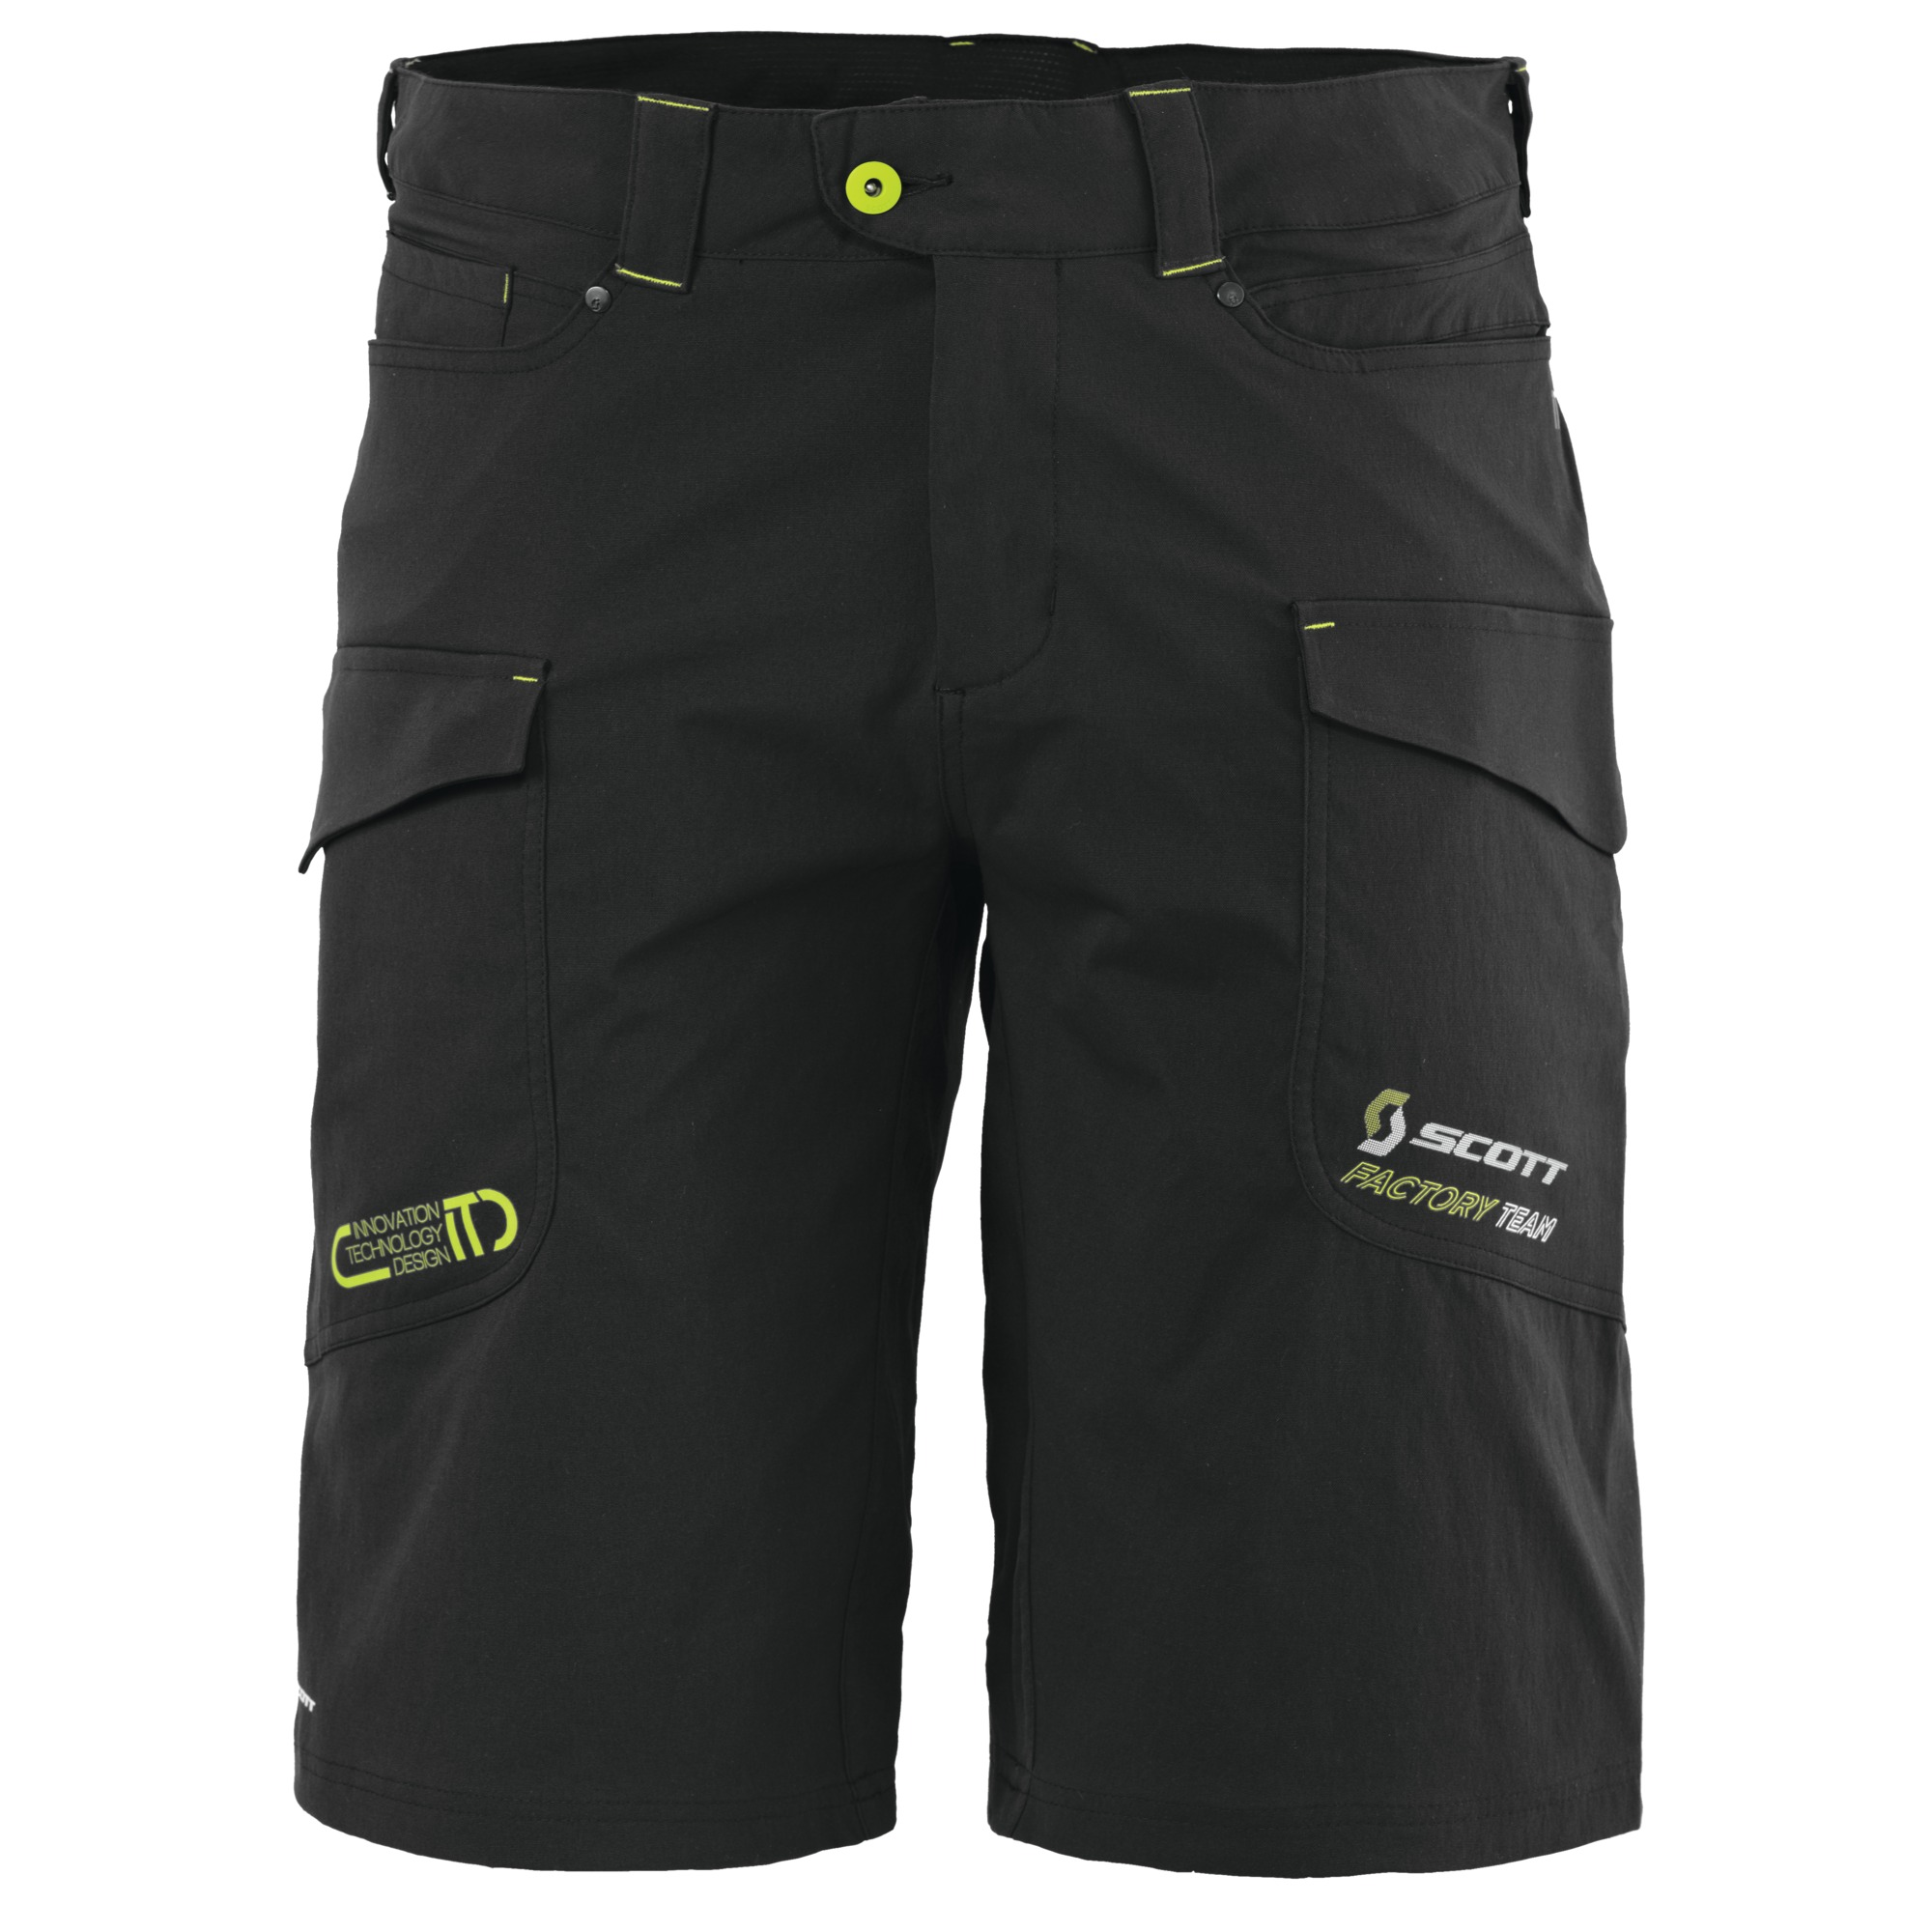 Shorts Factory Team Support